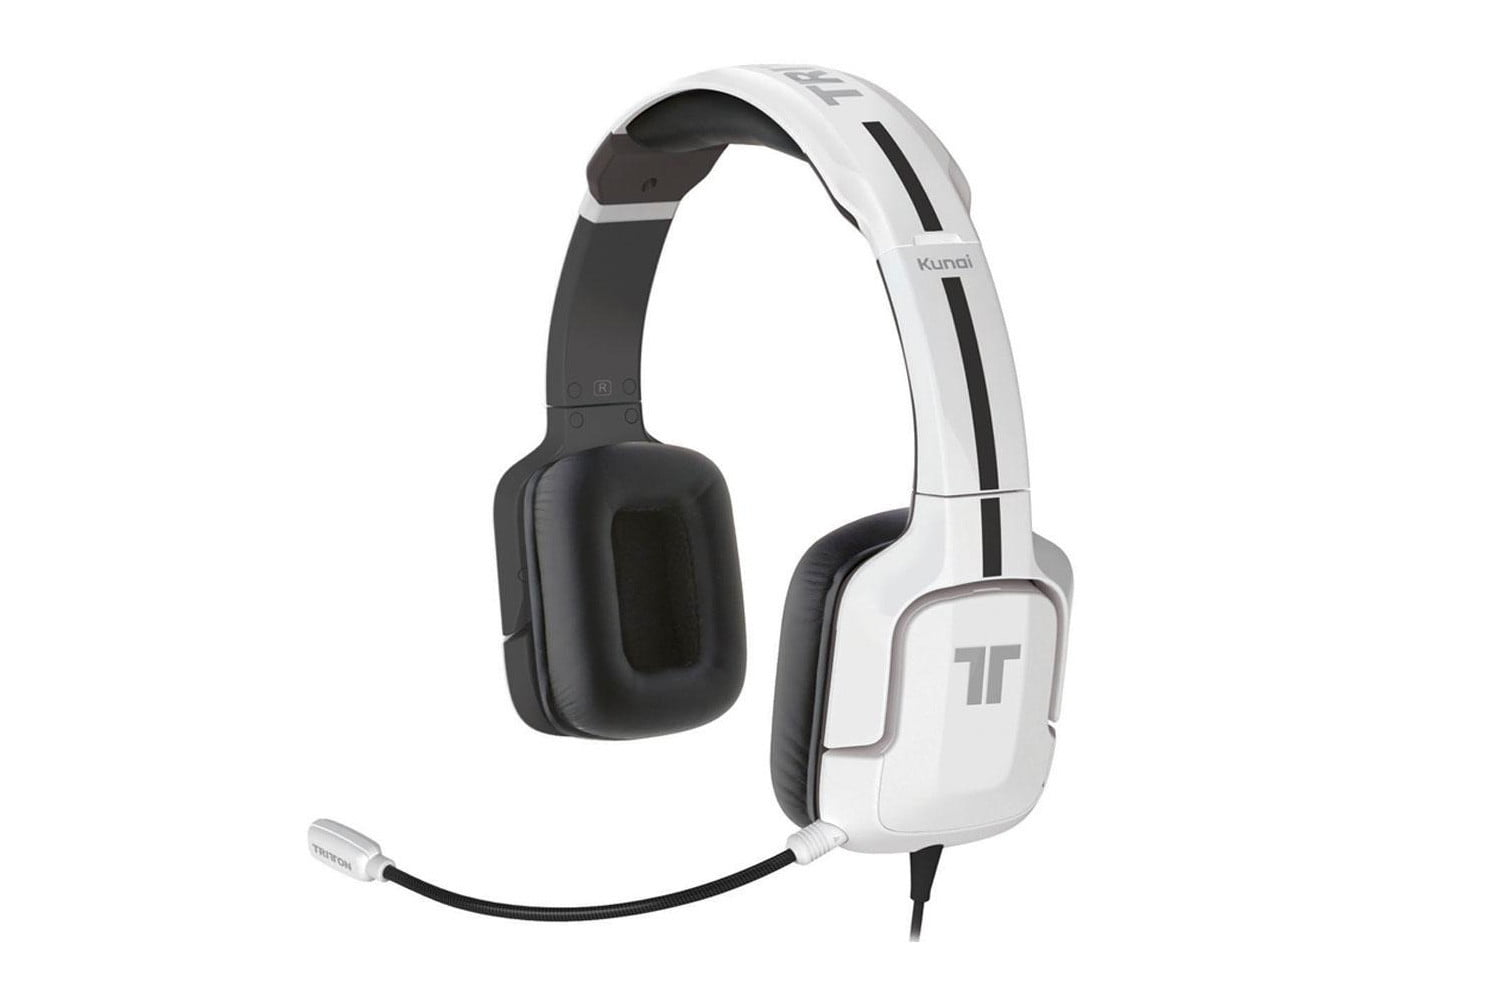 tritton kunai headphones